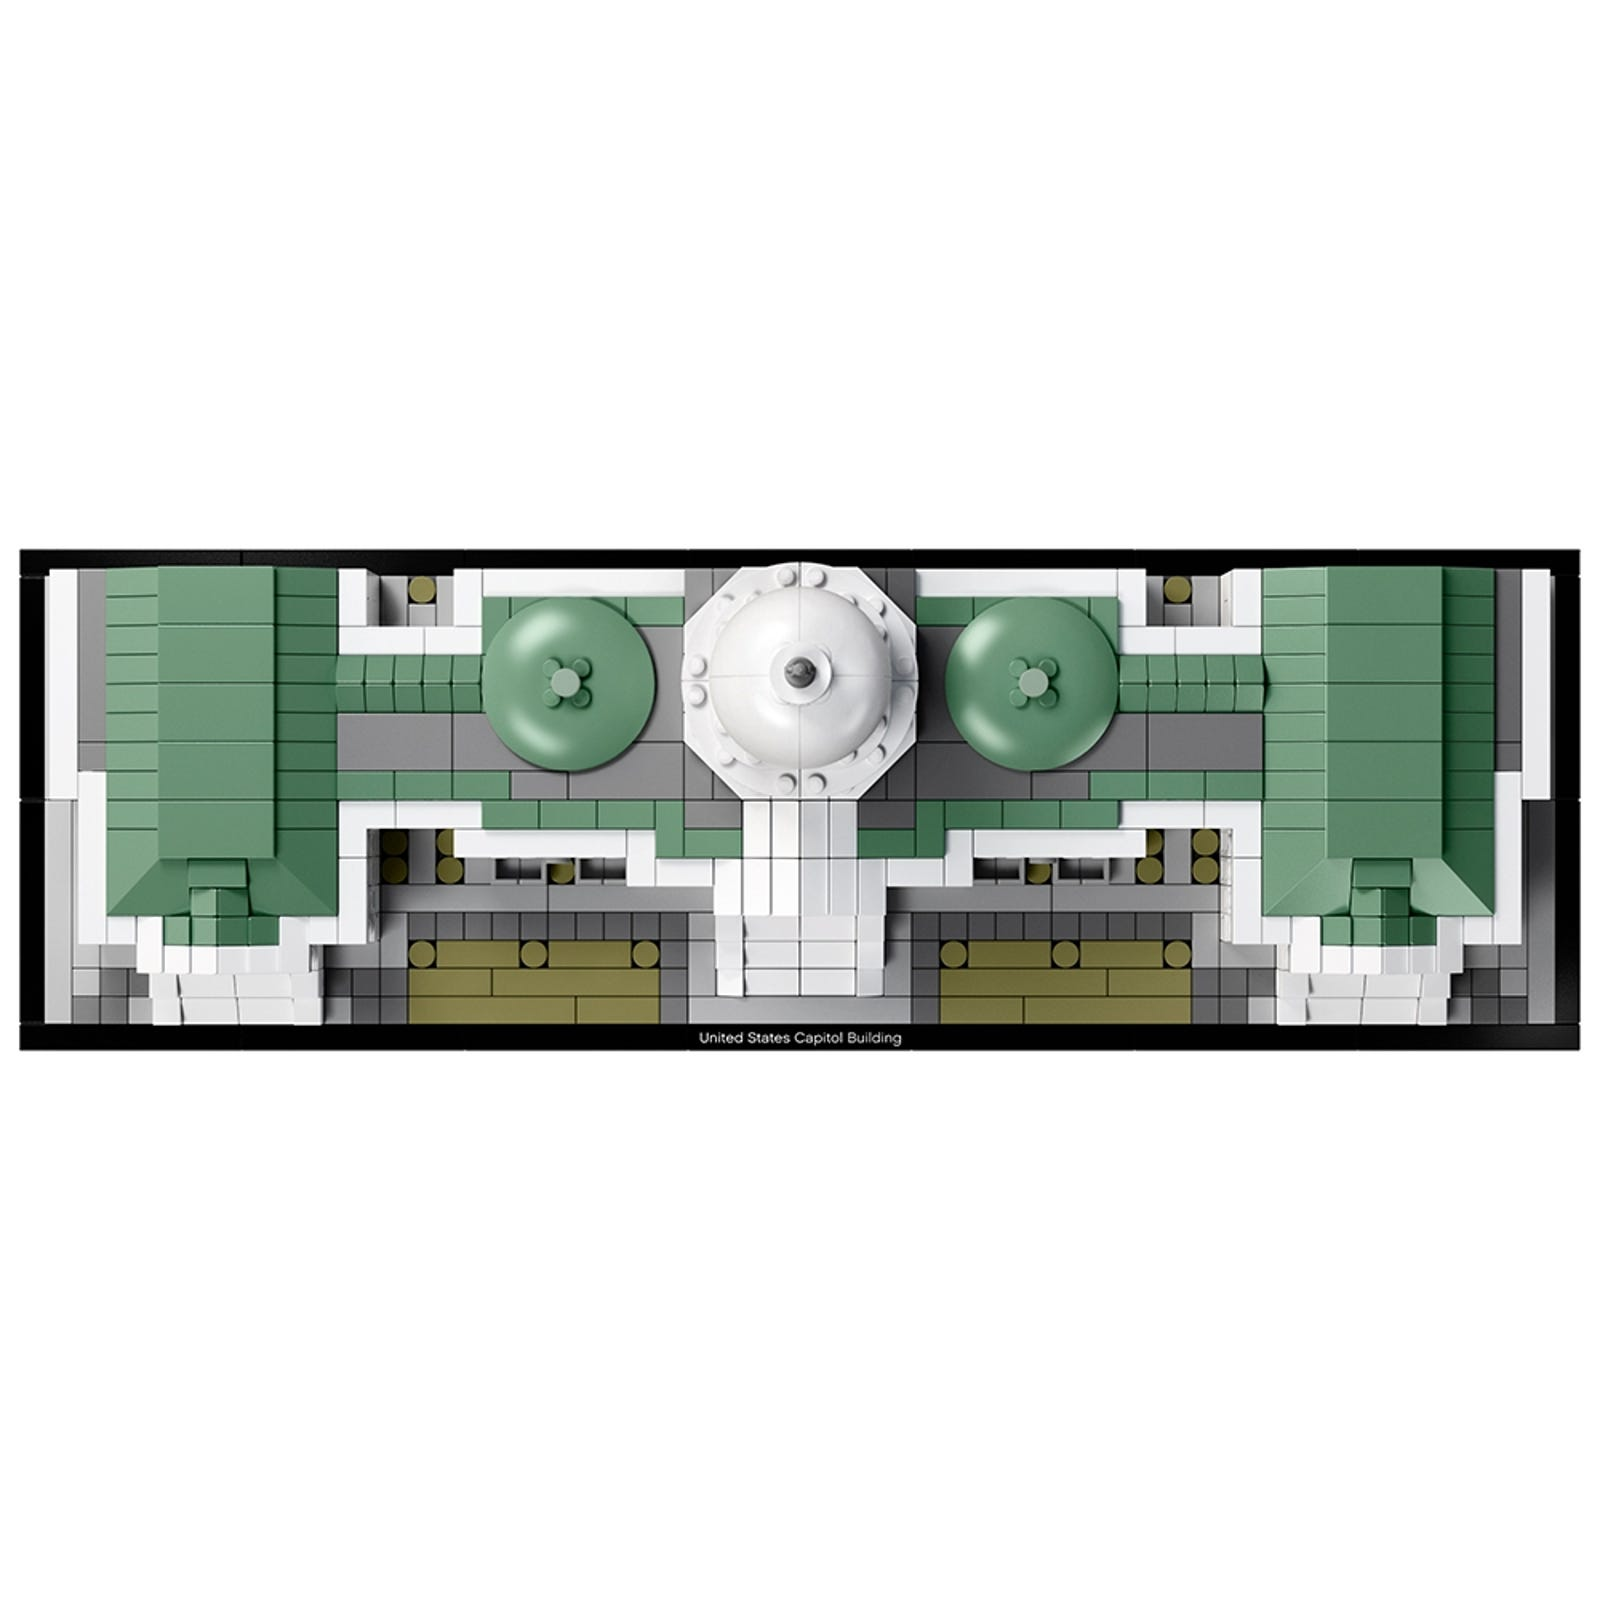 United States Capitol Building 21030 Architecture Buy Online At The Official Lego Shop Sg